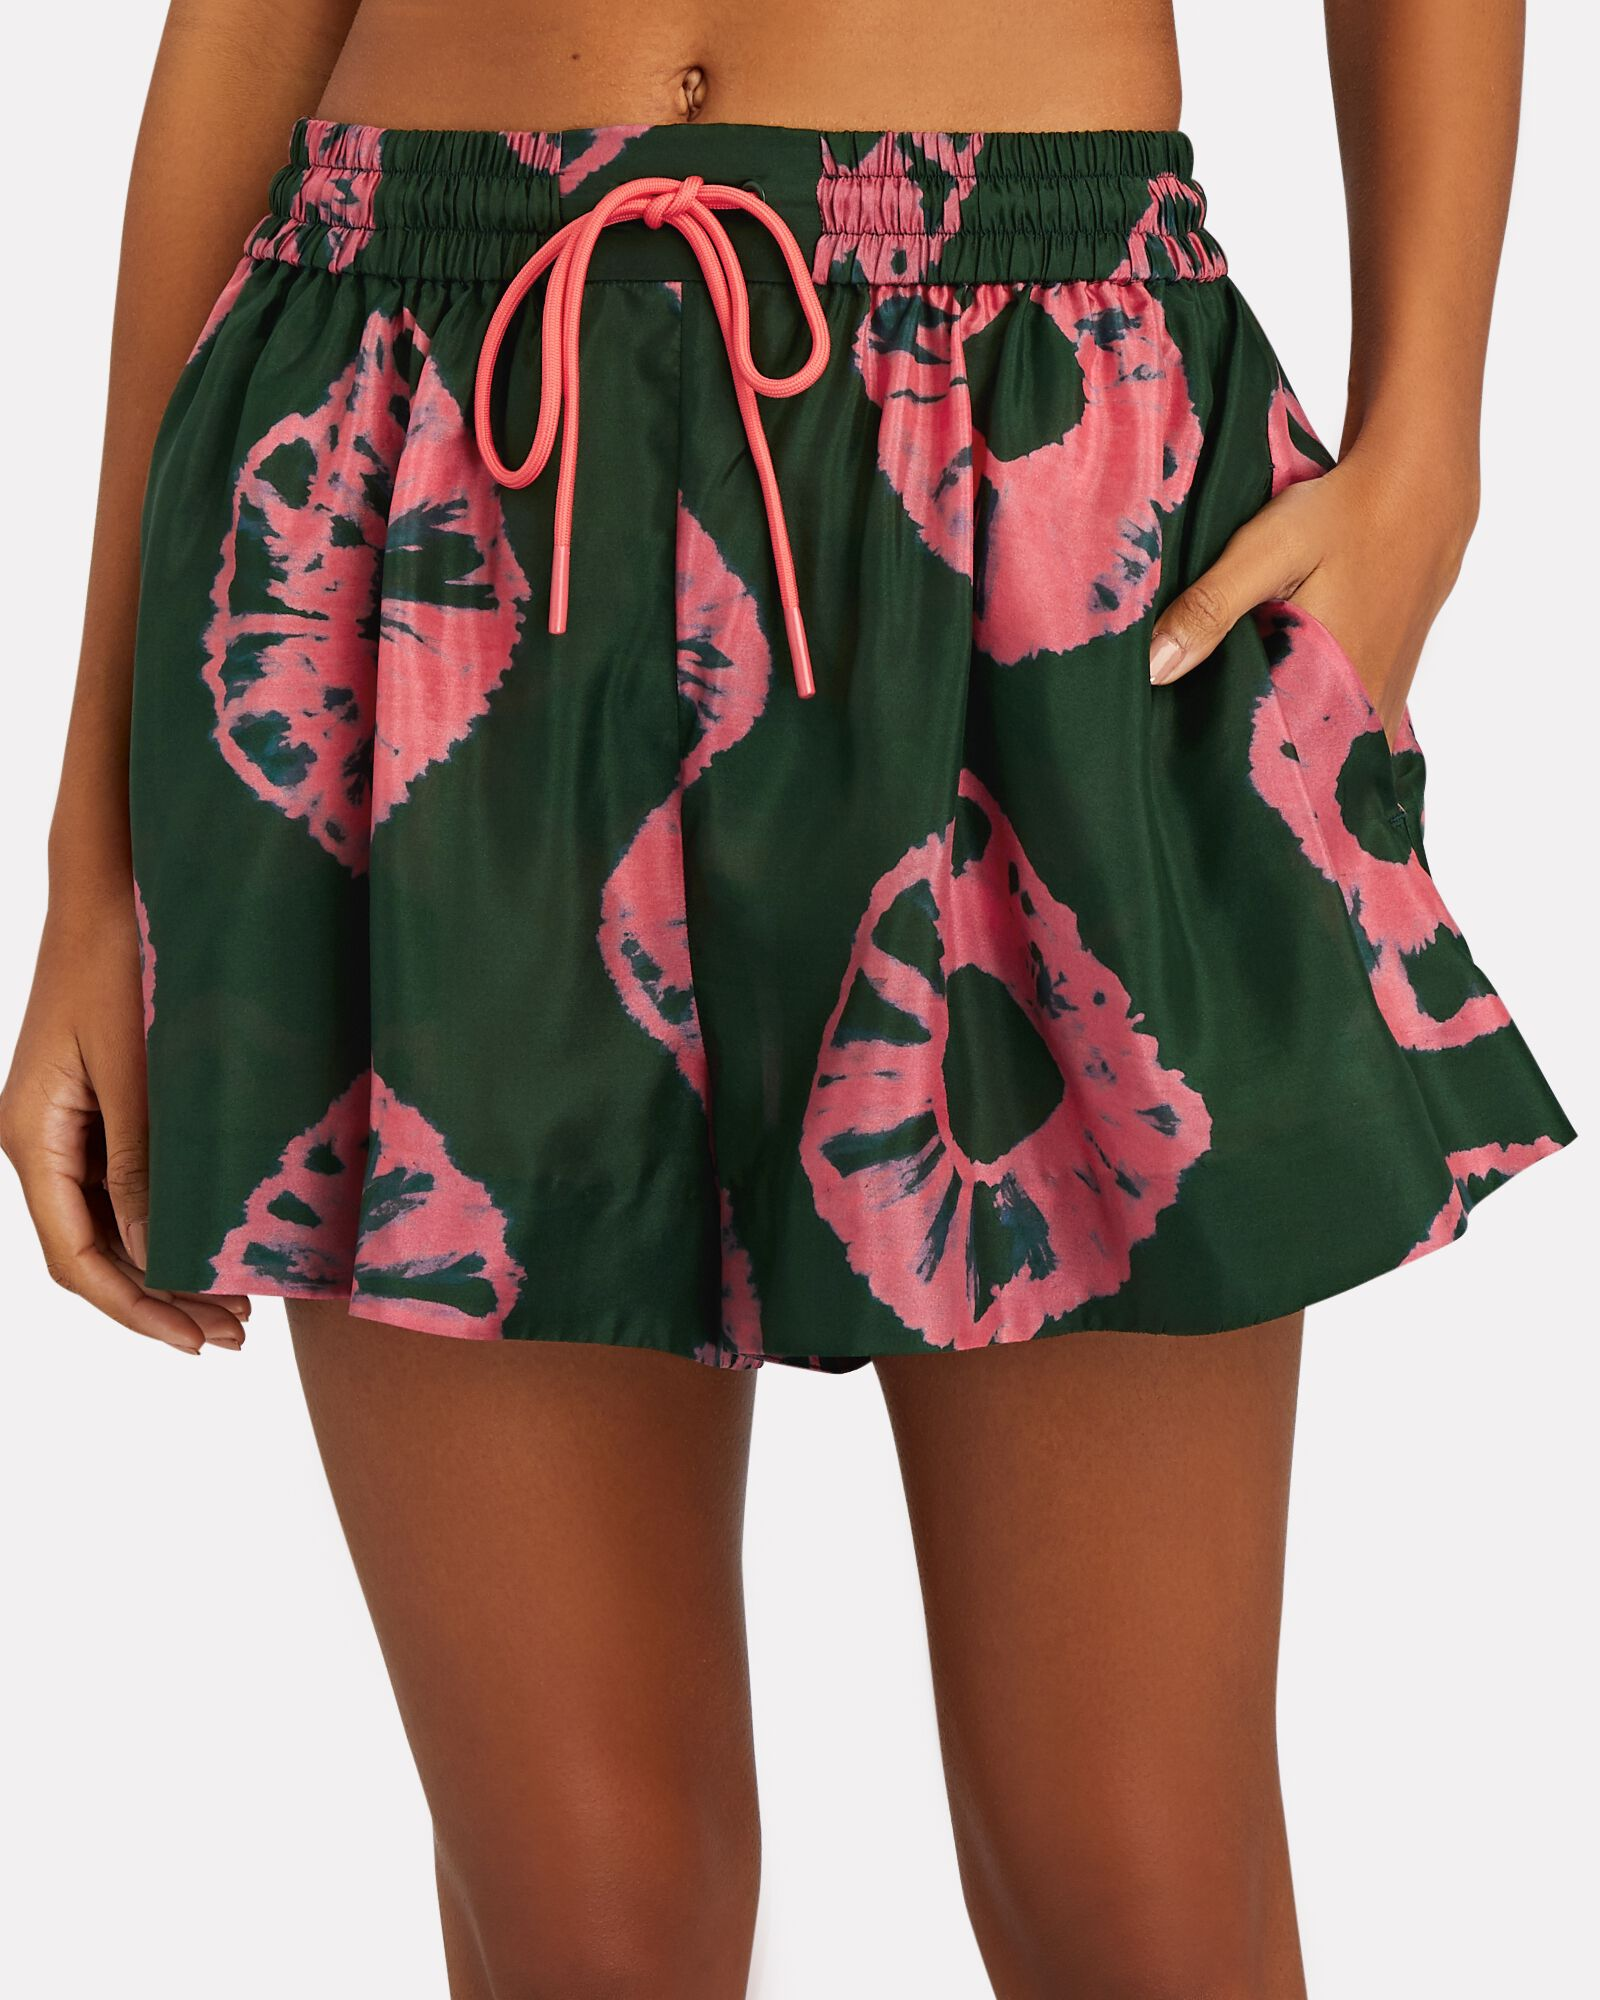 Poppy Tie-Dyed Silk Shorts, GREEN/PINK, hi-res